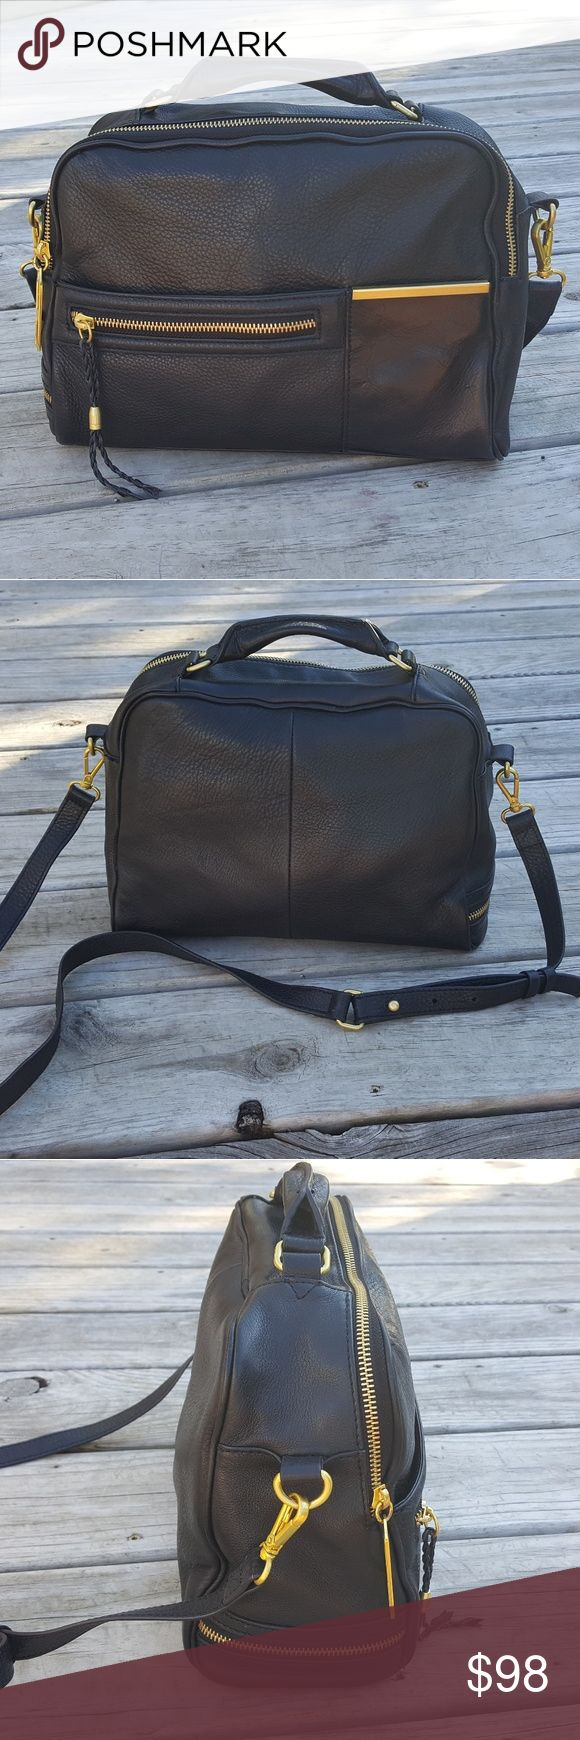 Kelsi Dagger Park Slope Black Crossbody Satchel This unique satchel features black leather, gold hardware, and an adjustable crossbody strap. It is in very good pre-owned condition with only minimal signs of wear. Kelsi Dagger Bags Satchels